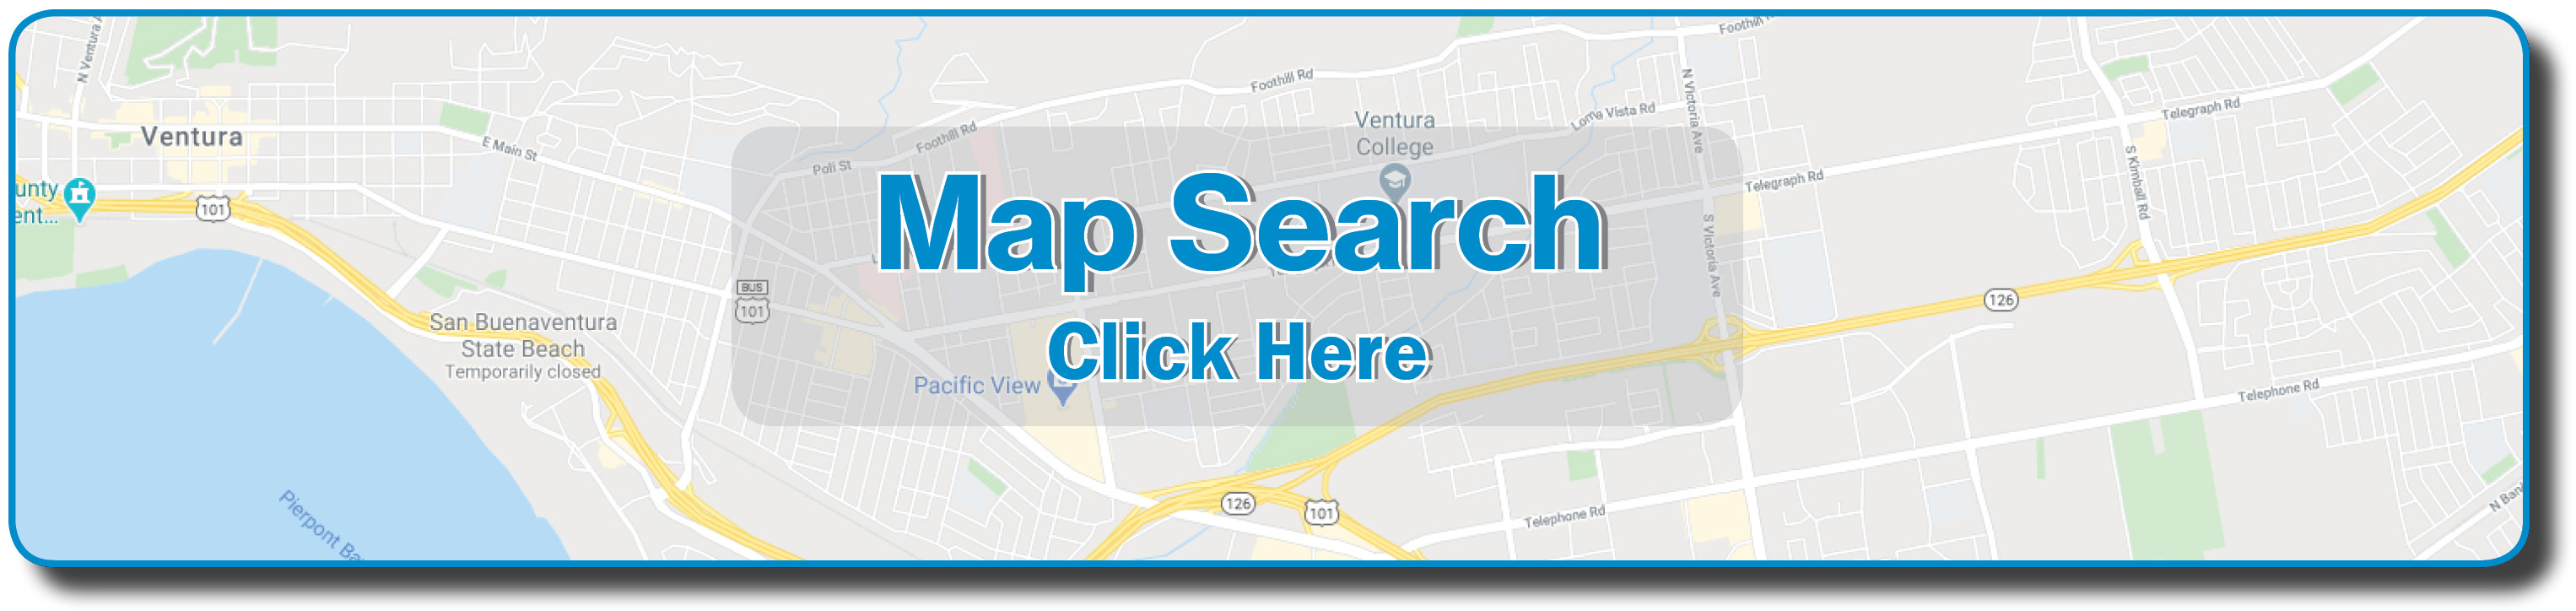 Ventura Map Search